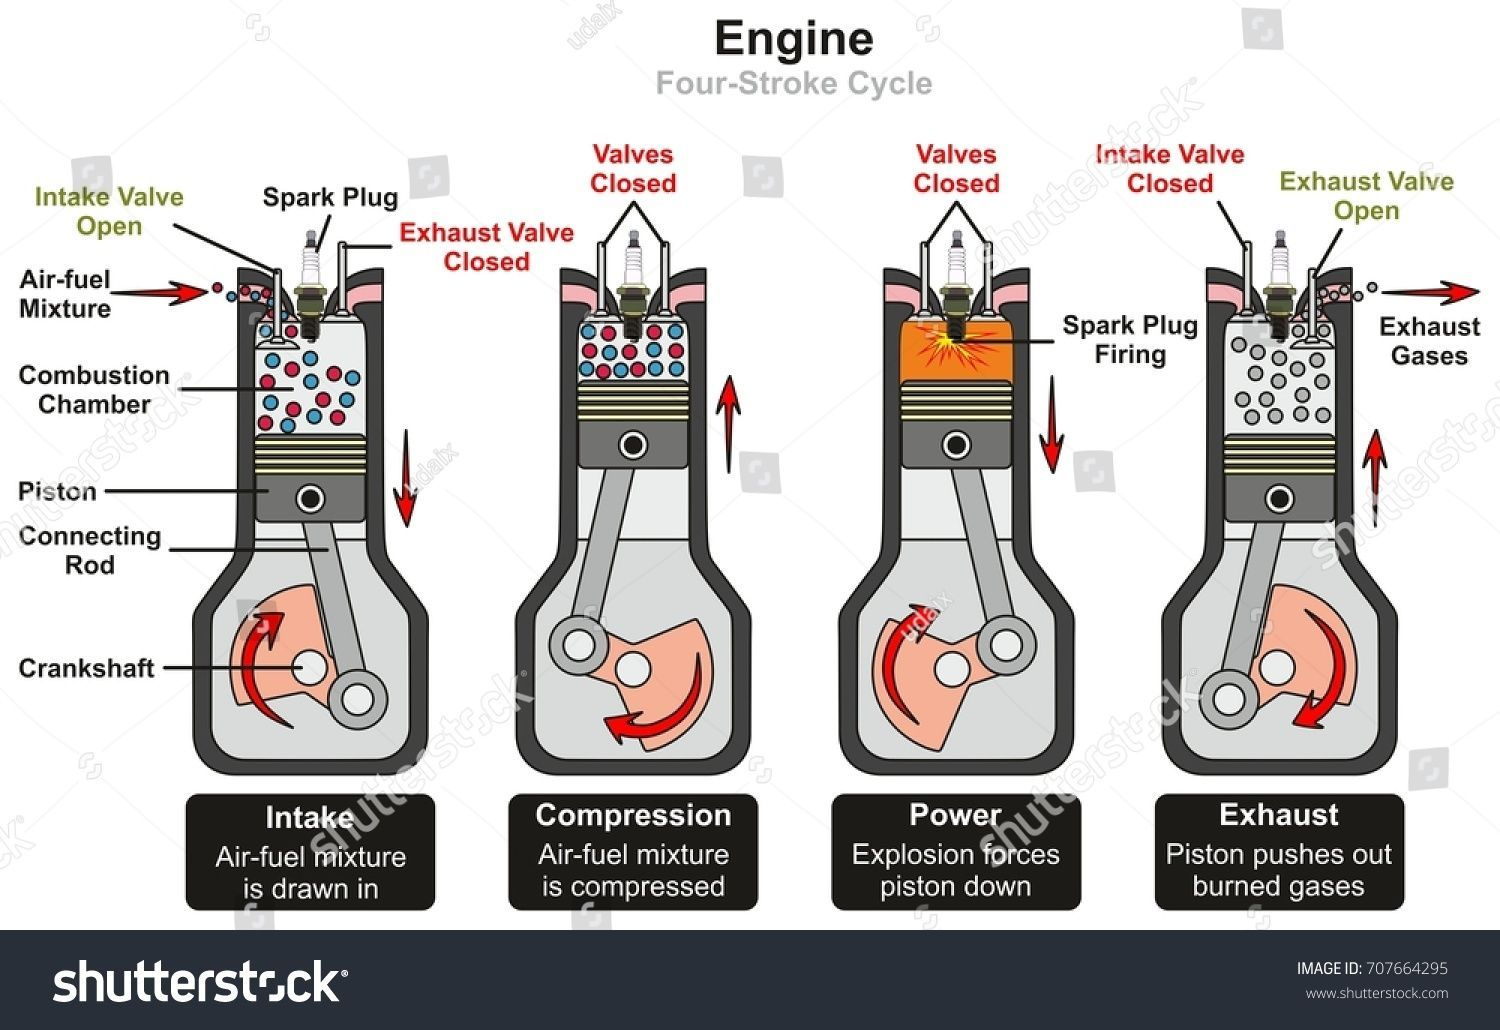 Engine Four Stroke Cycle Infographic Diagram Including Stages Of